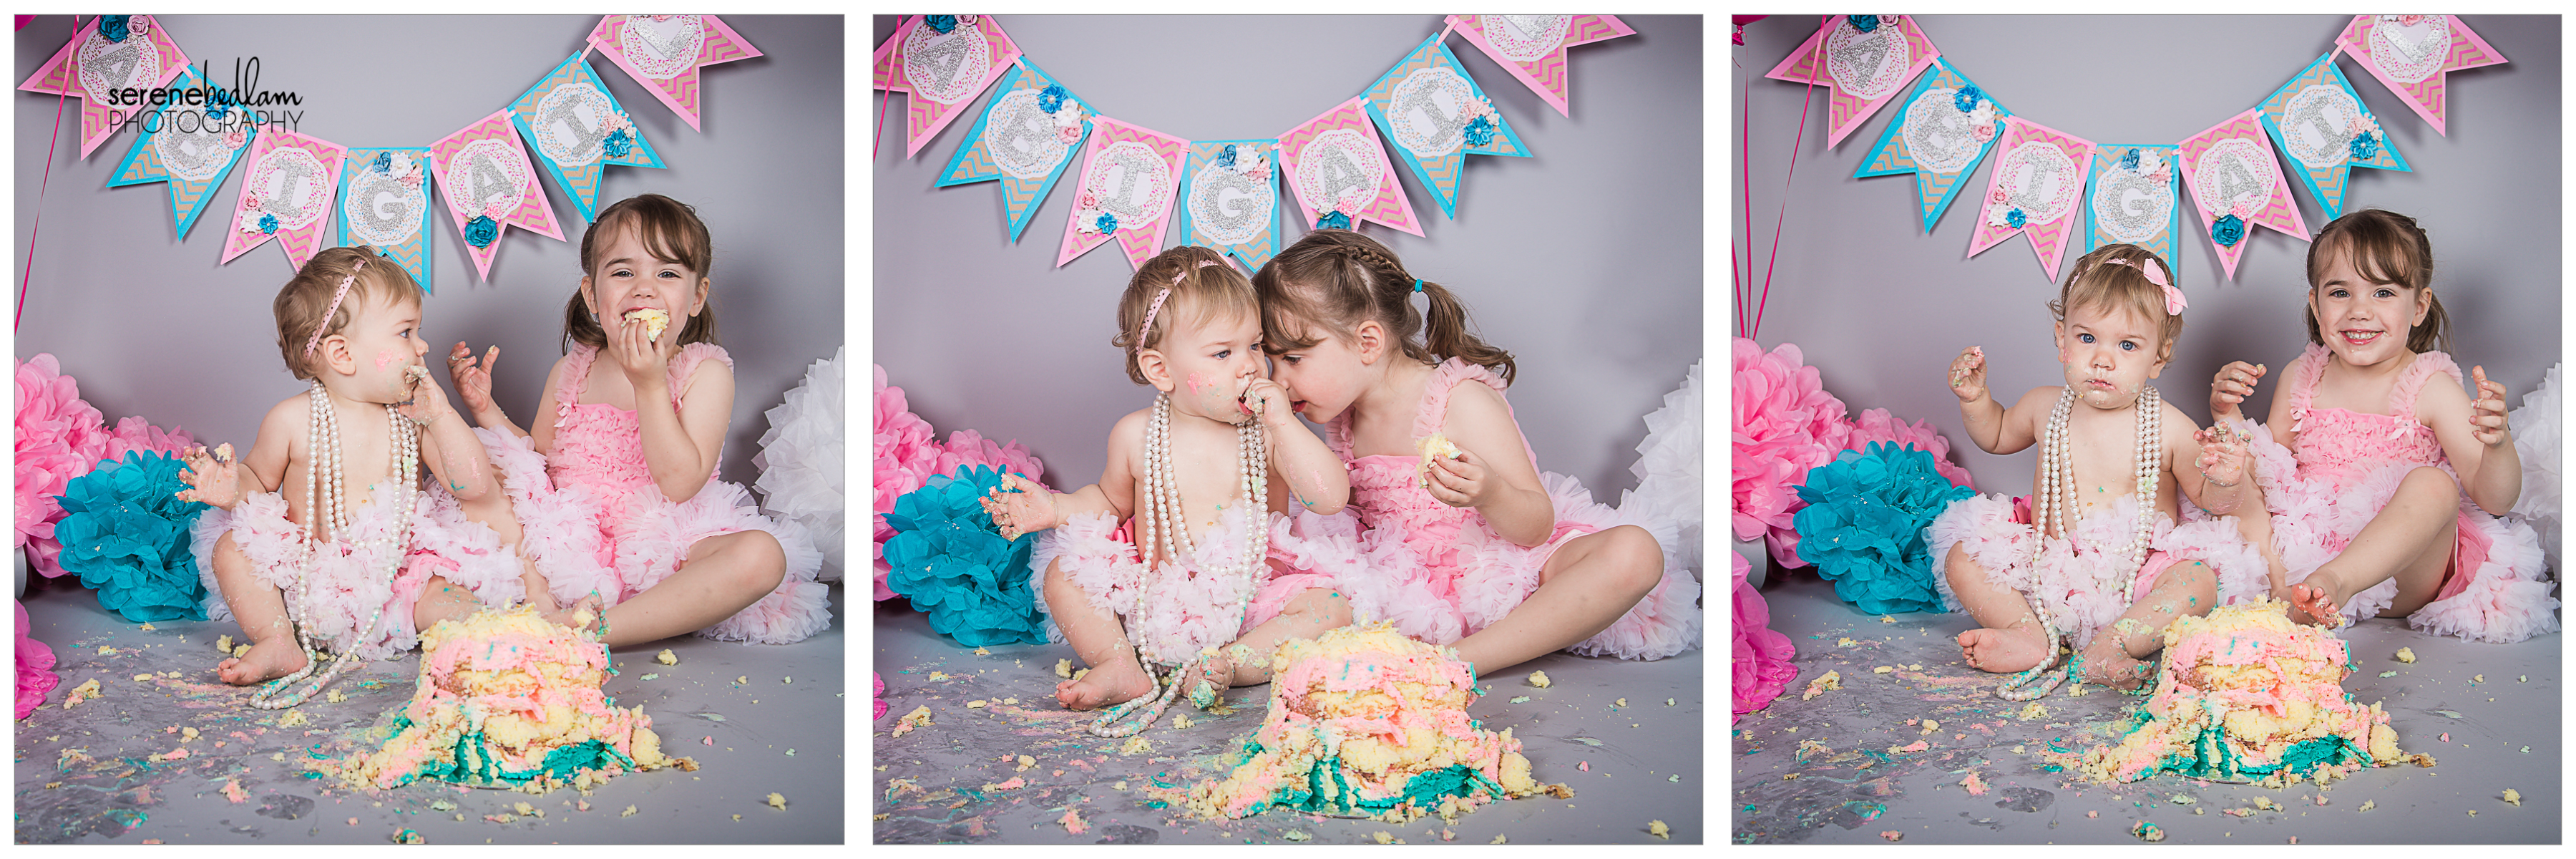 cake smash portrait photography serene bedlam abi